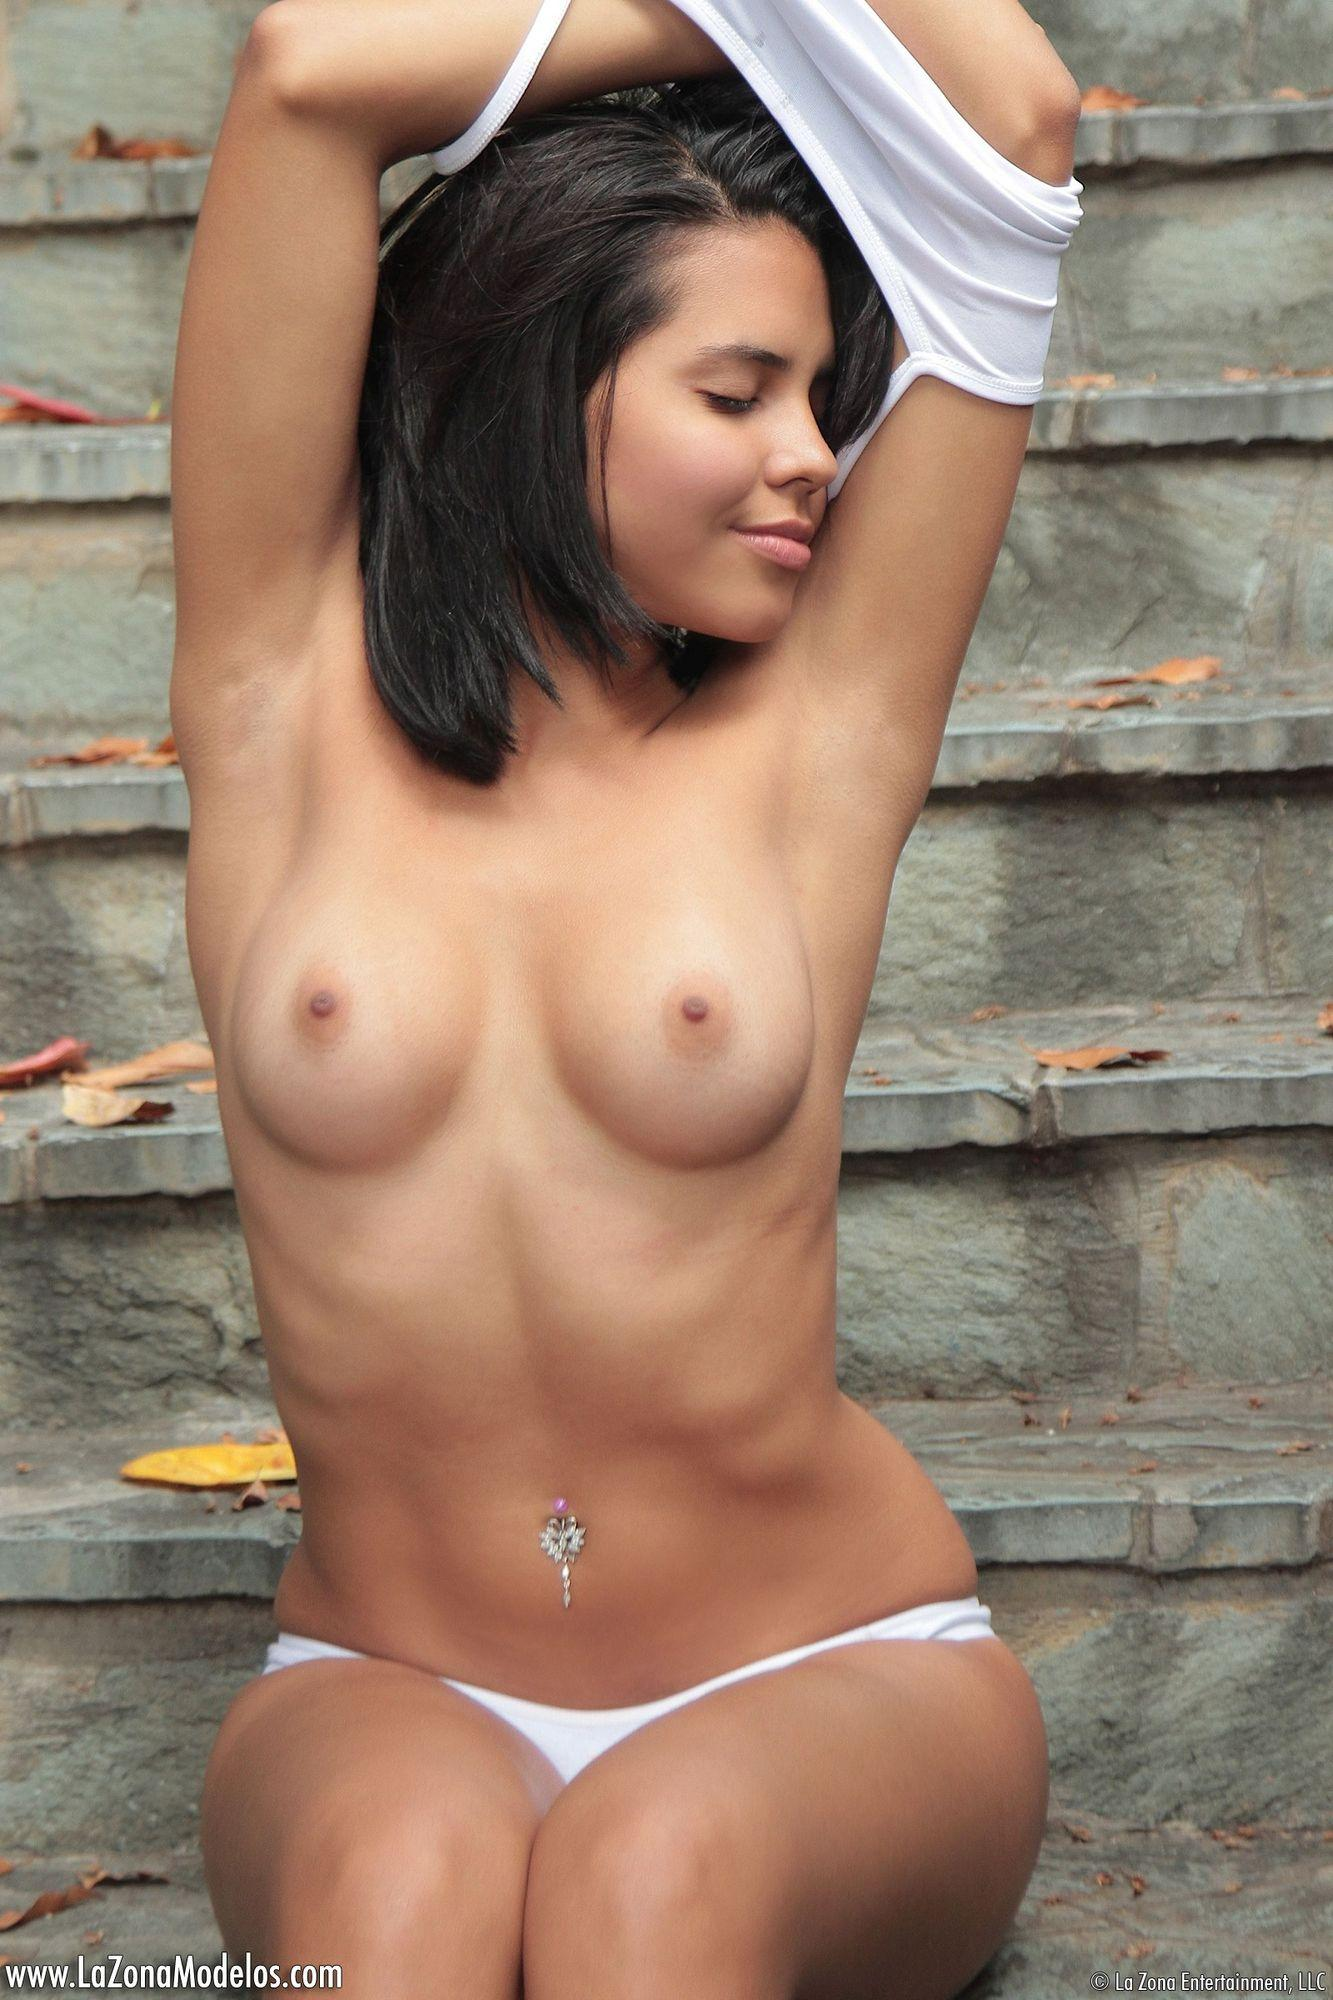 Vivi Spice Is A Playful Latina Teen That Has A Tight Body That She